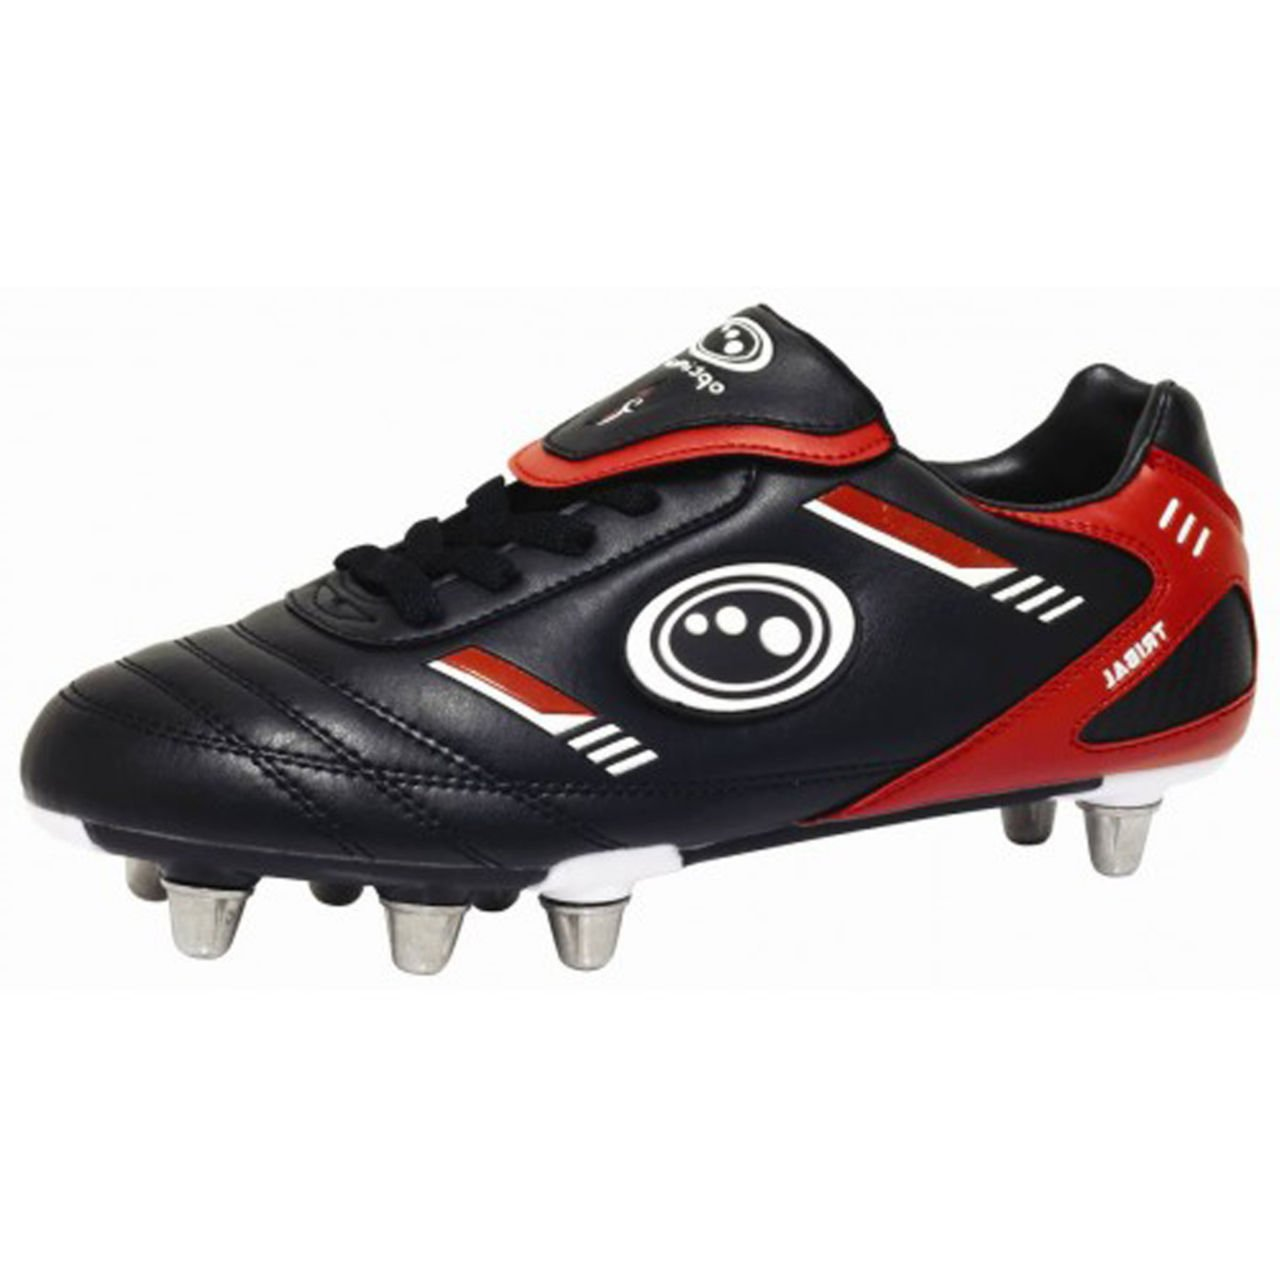 Optimum Rugby Boots Tribal Black/red - Sz 12'' by Optimum